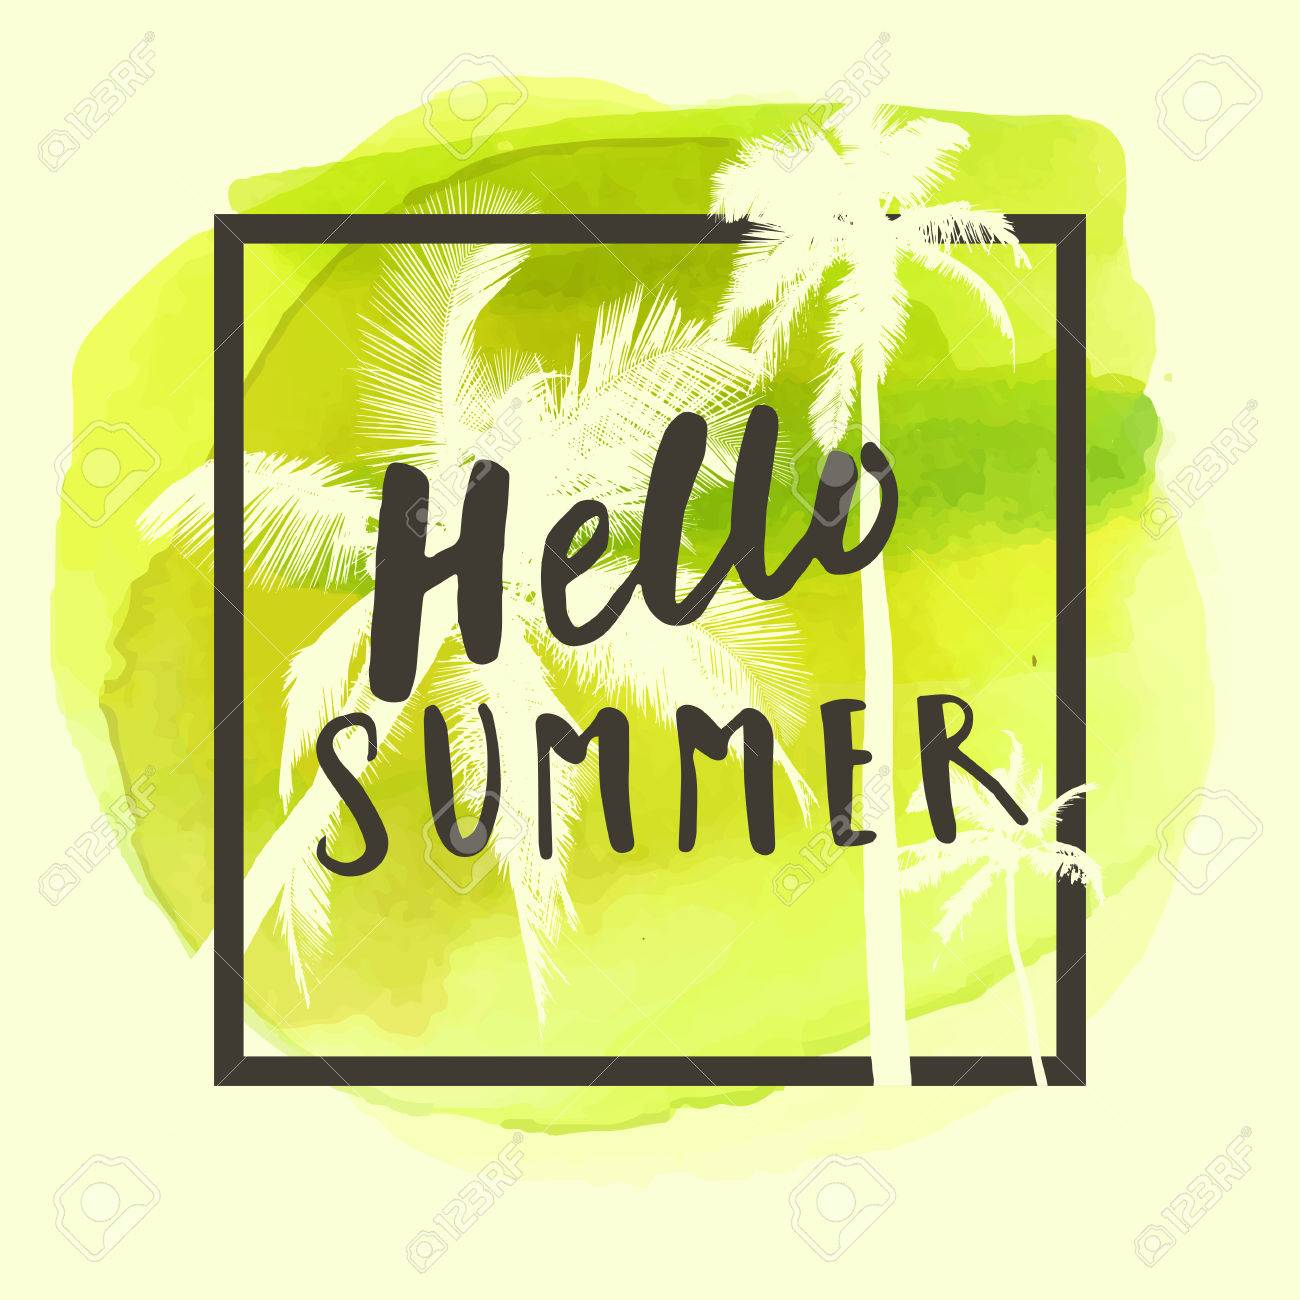 a39255a73008 Hello Summer. Modern calligraphic T-shirt design with flat palm trees on  bright colorful